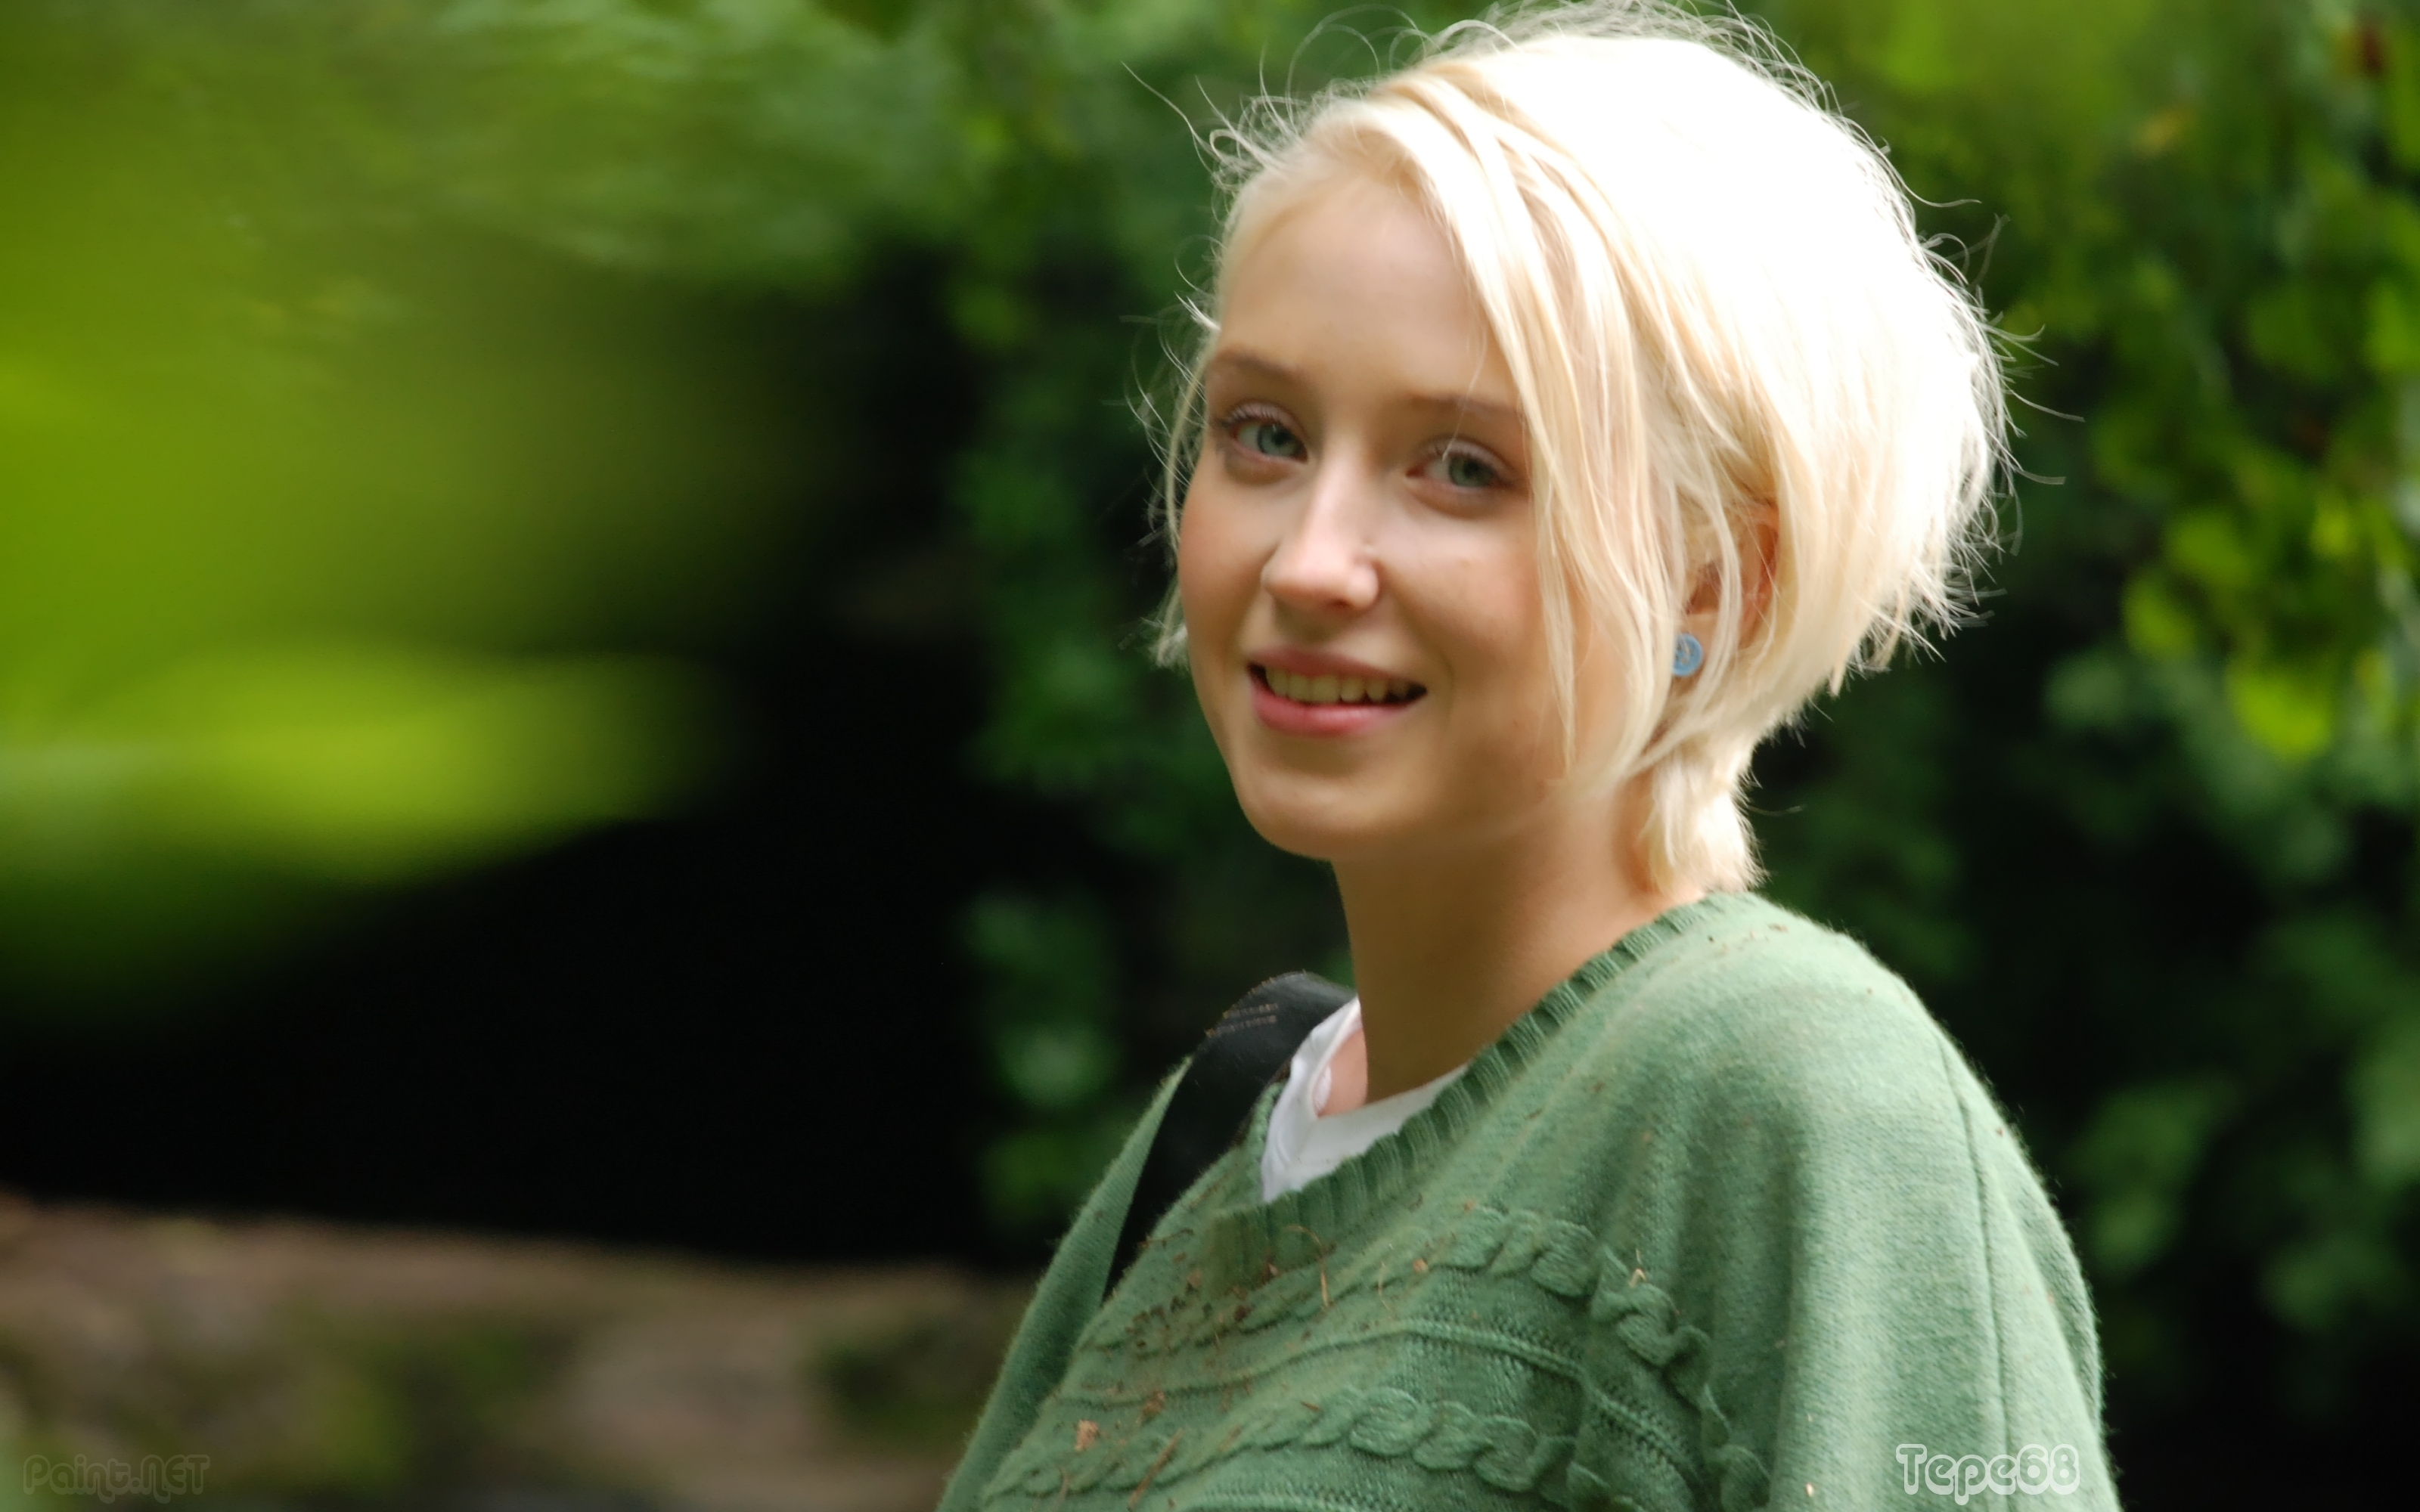 3200x2000 - Lily Loveless Wallpapers 1